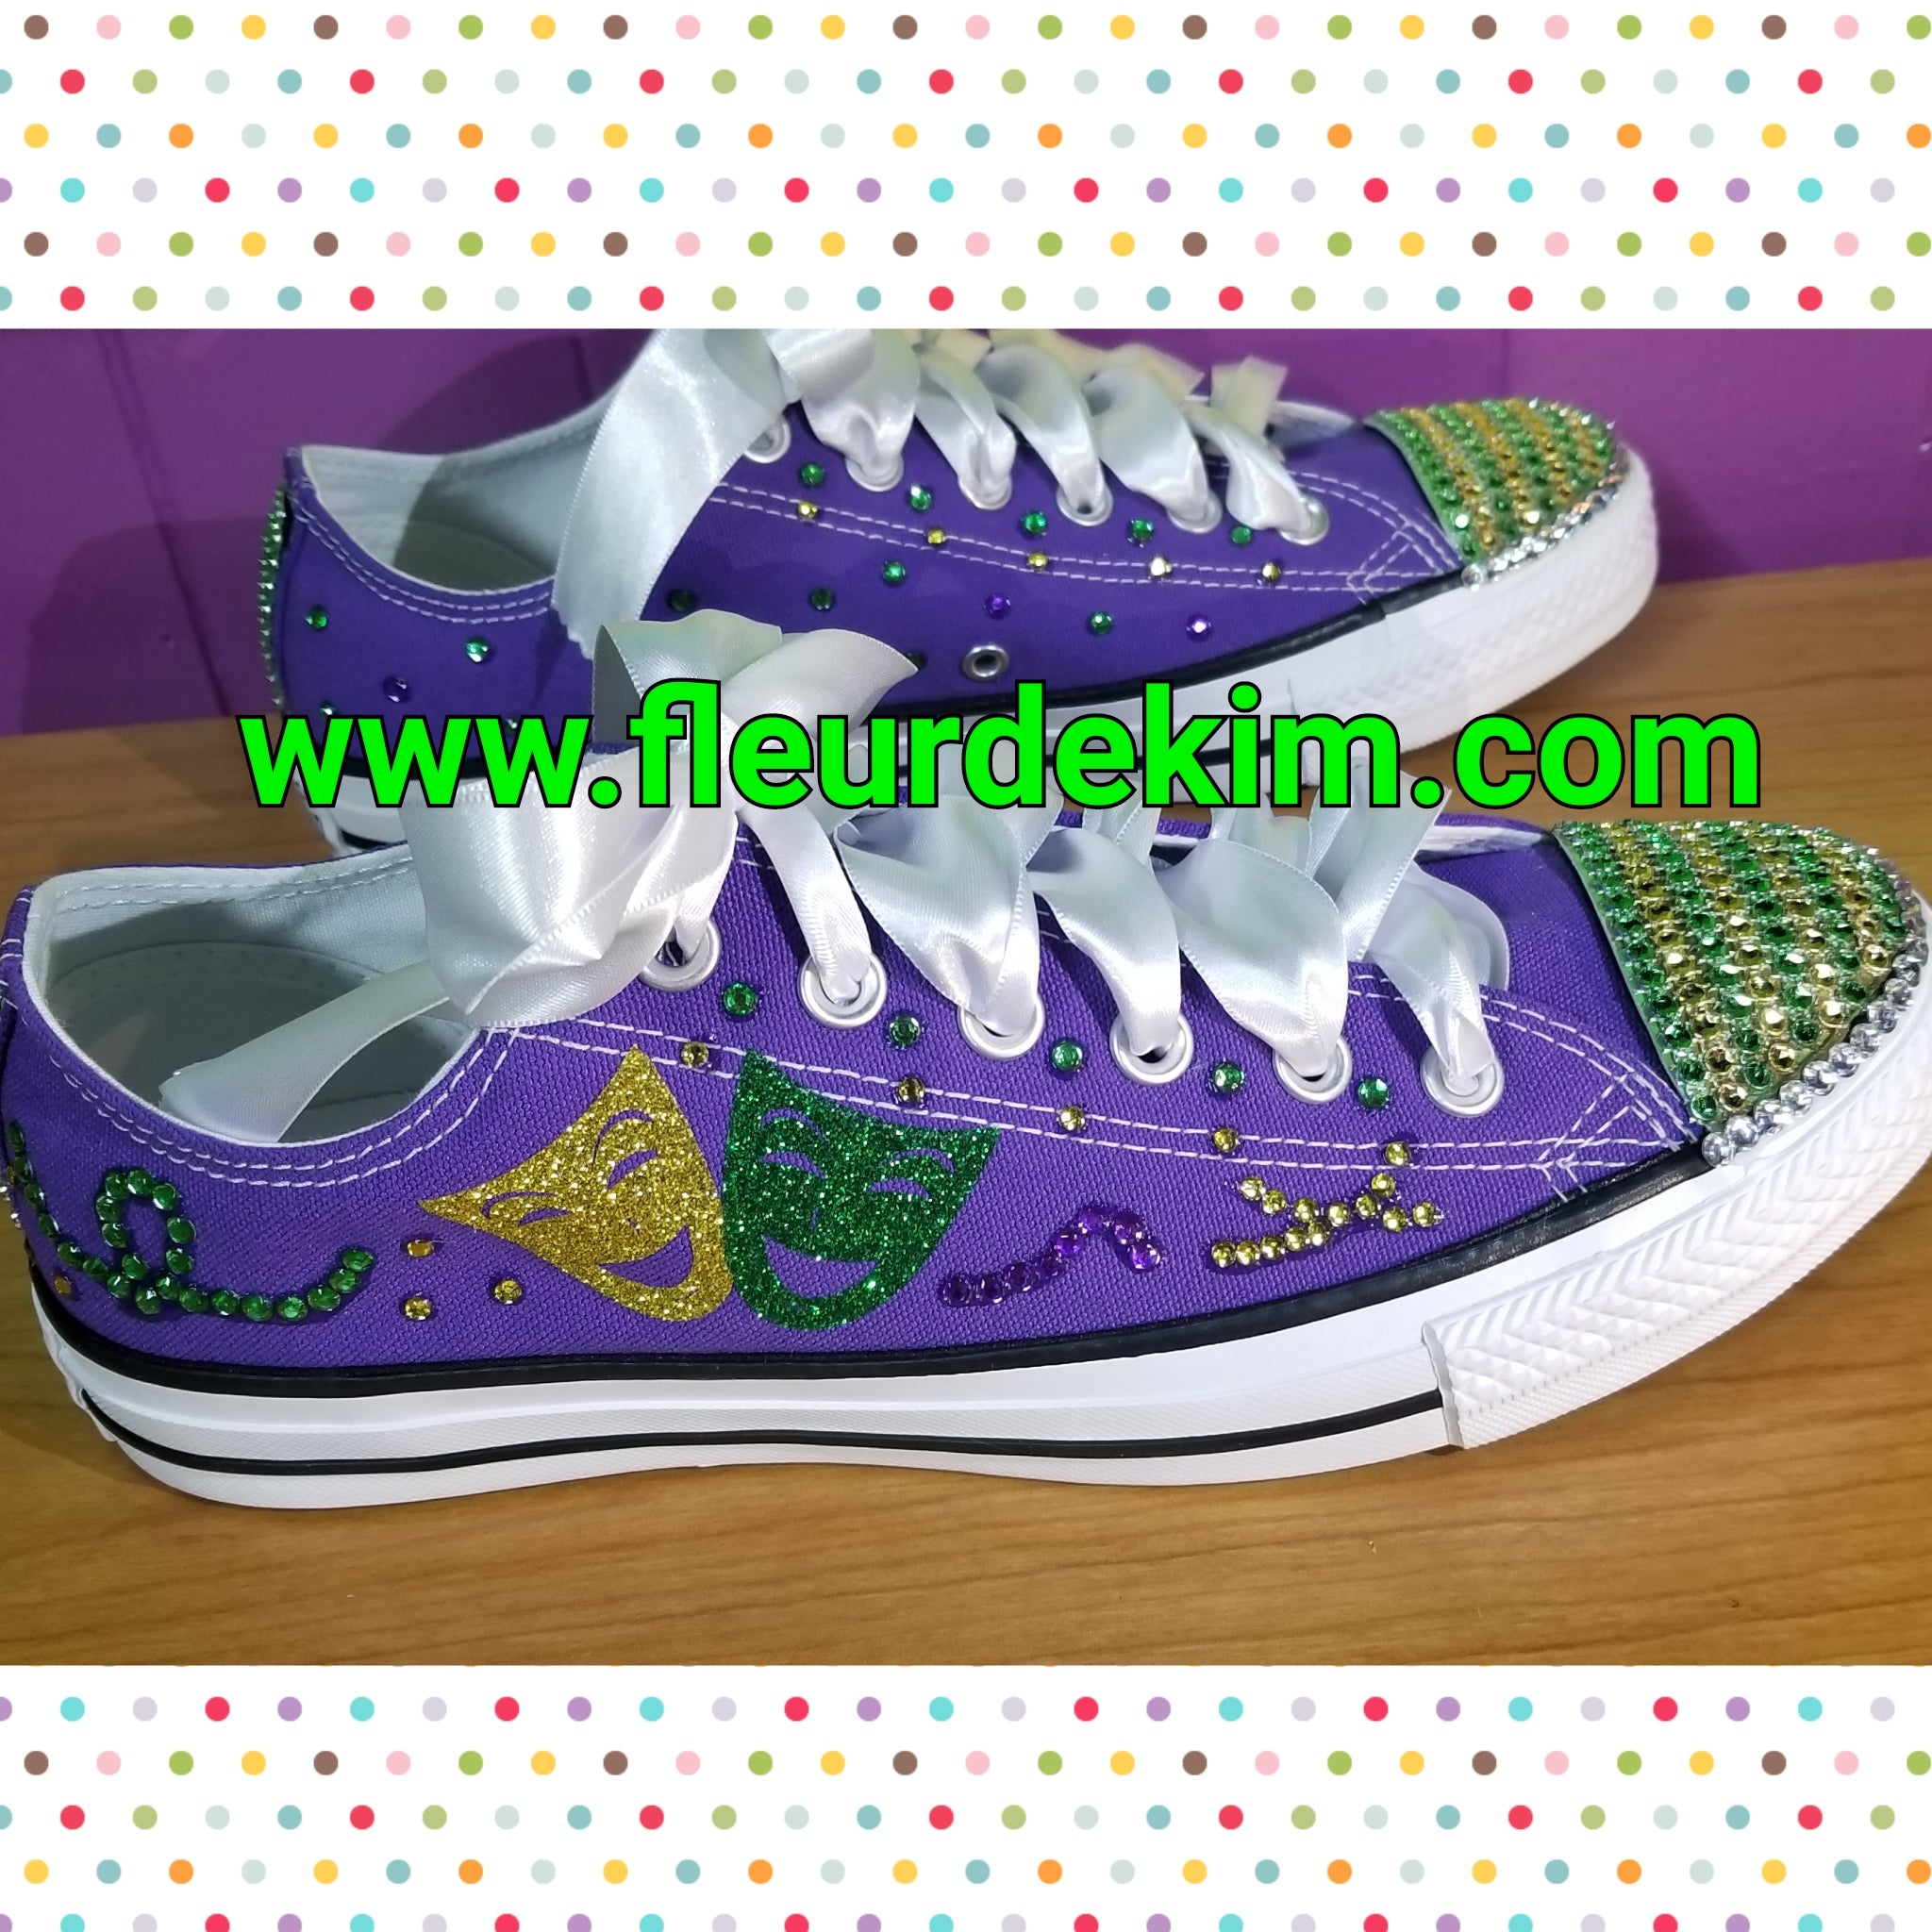 Mardi Gras mask shoes (ladies sizes)